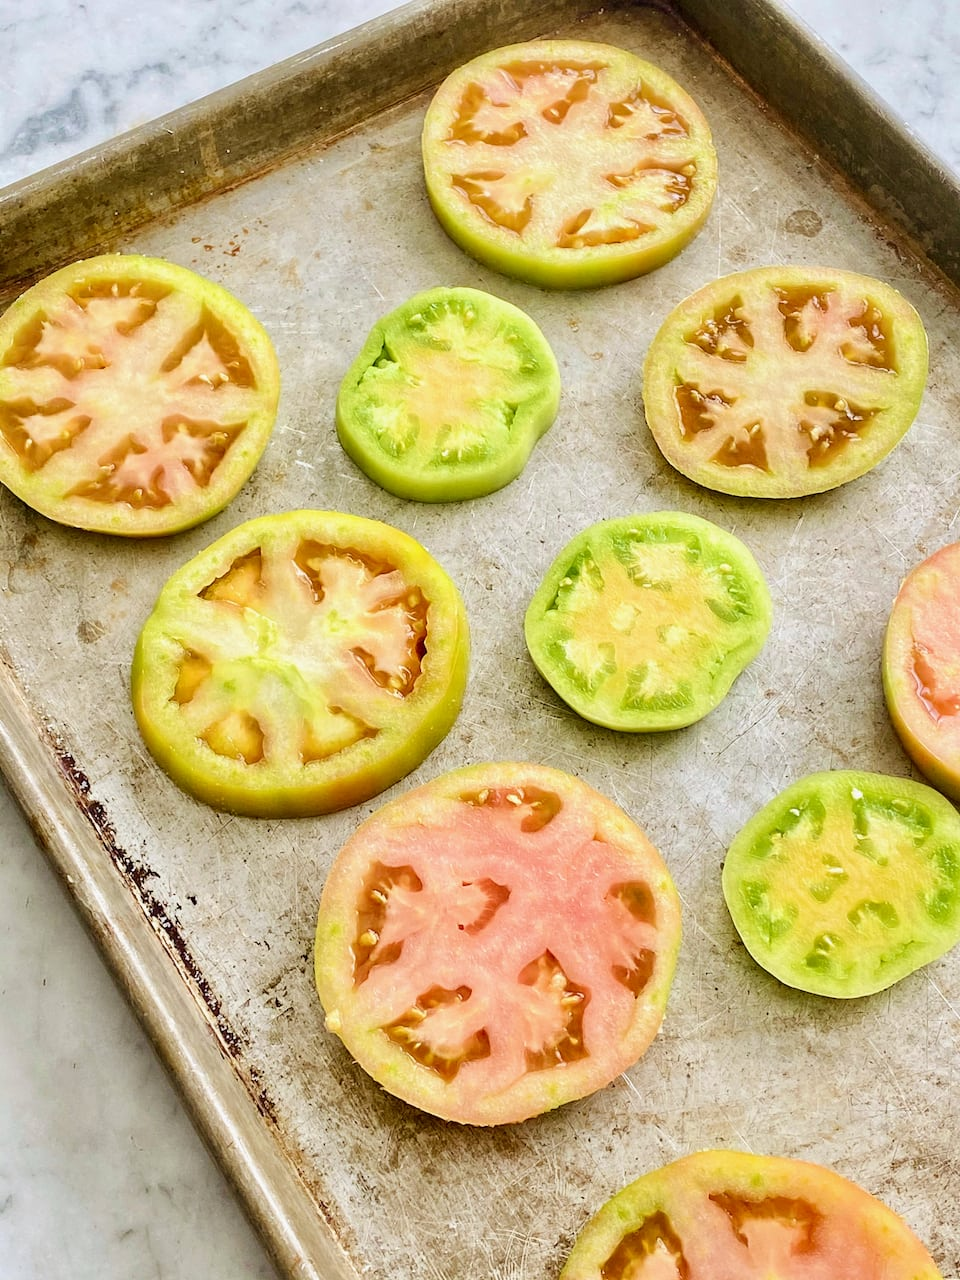 green tomatoes sliced in rounds on a sheet pan